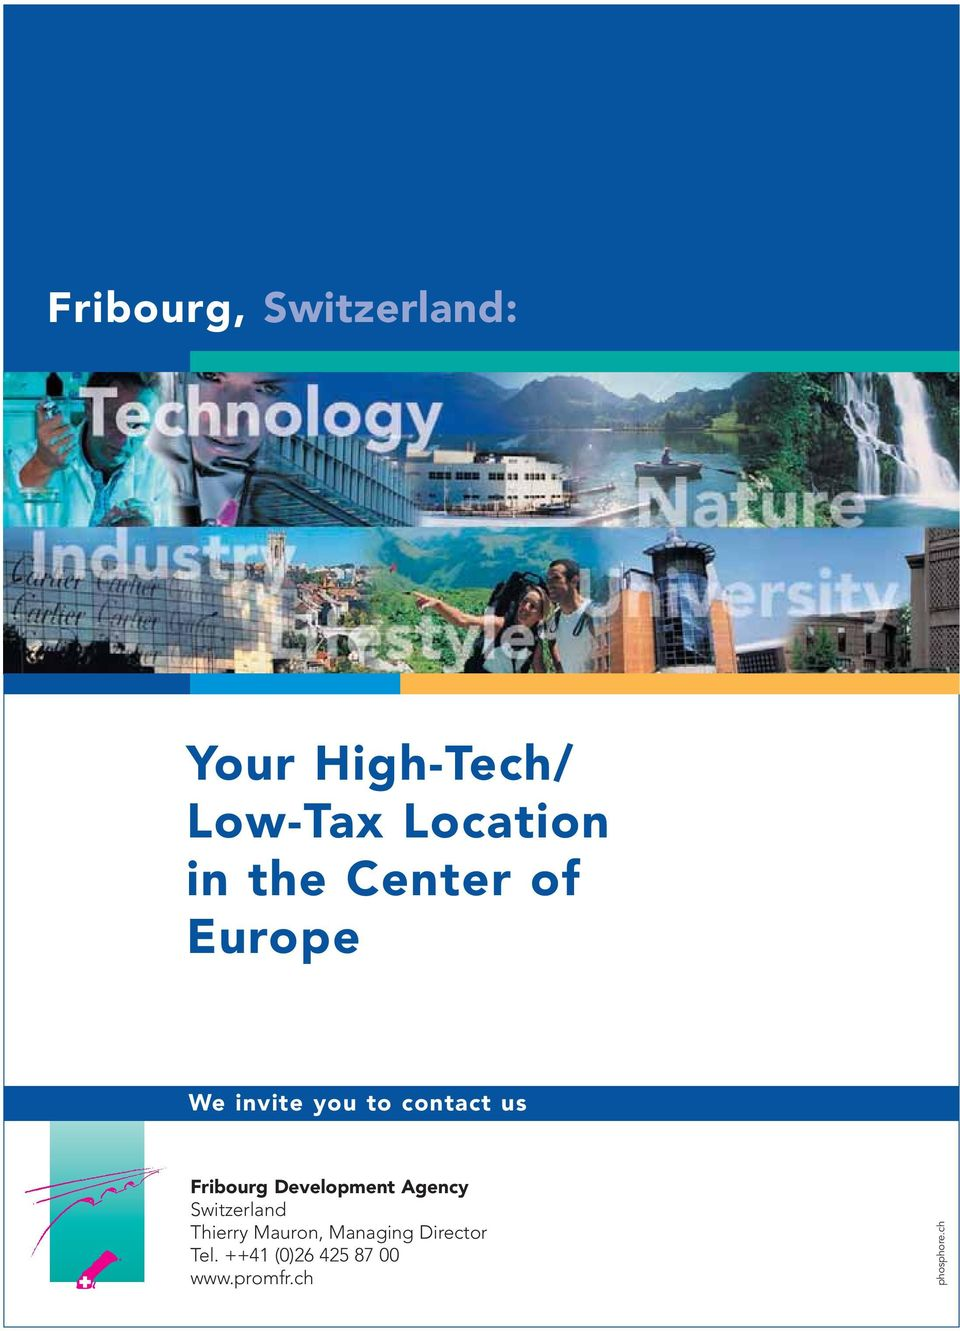 Development Agency Switzerland Thierry Mauron, Managing